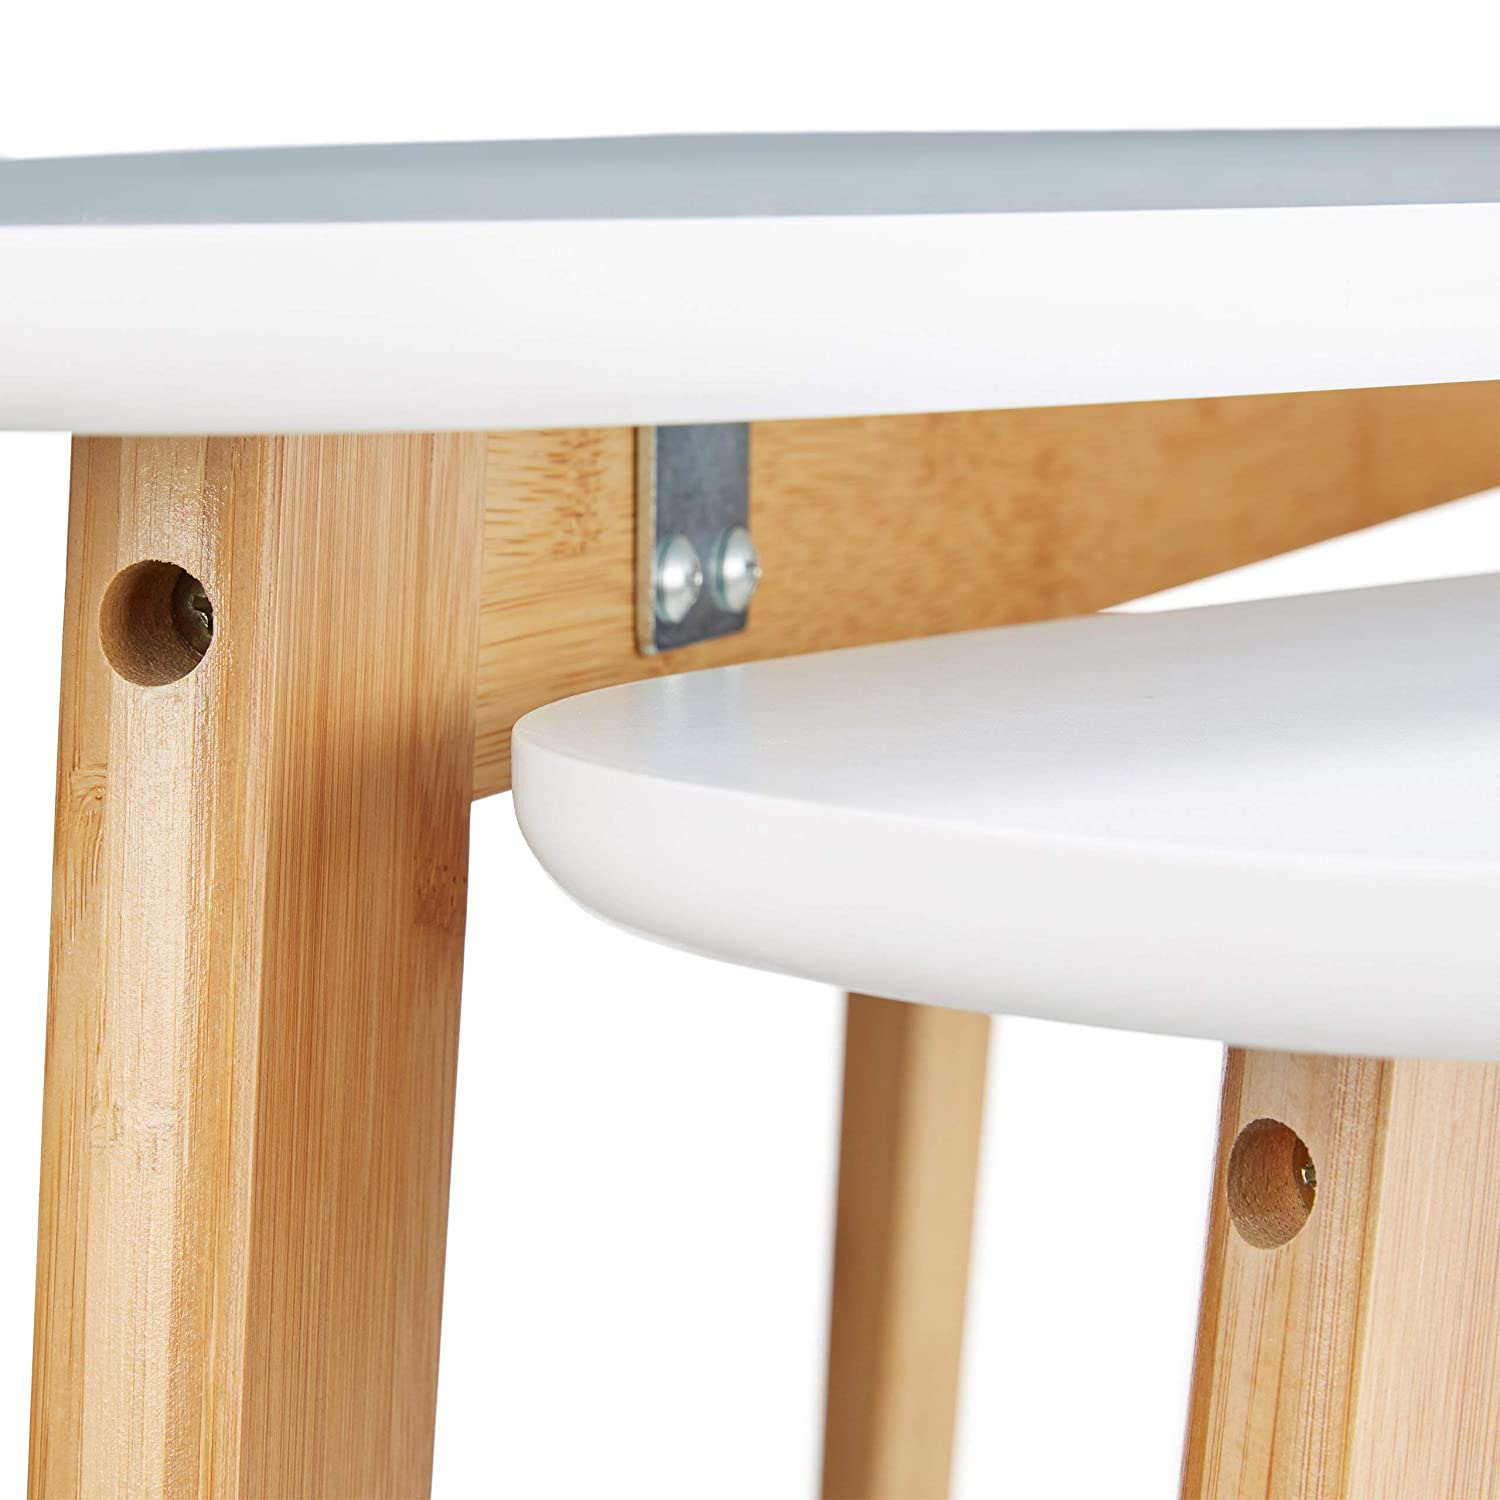 Coffee Tables Relaxdays Set of Wooden Nordic Tables Bamboo Legs White Side//End Tables in 2 Sizes